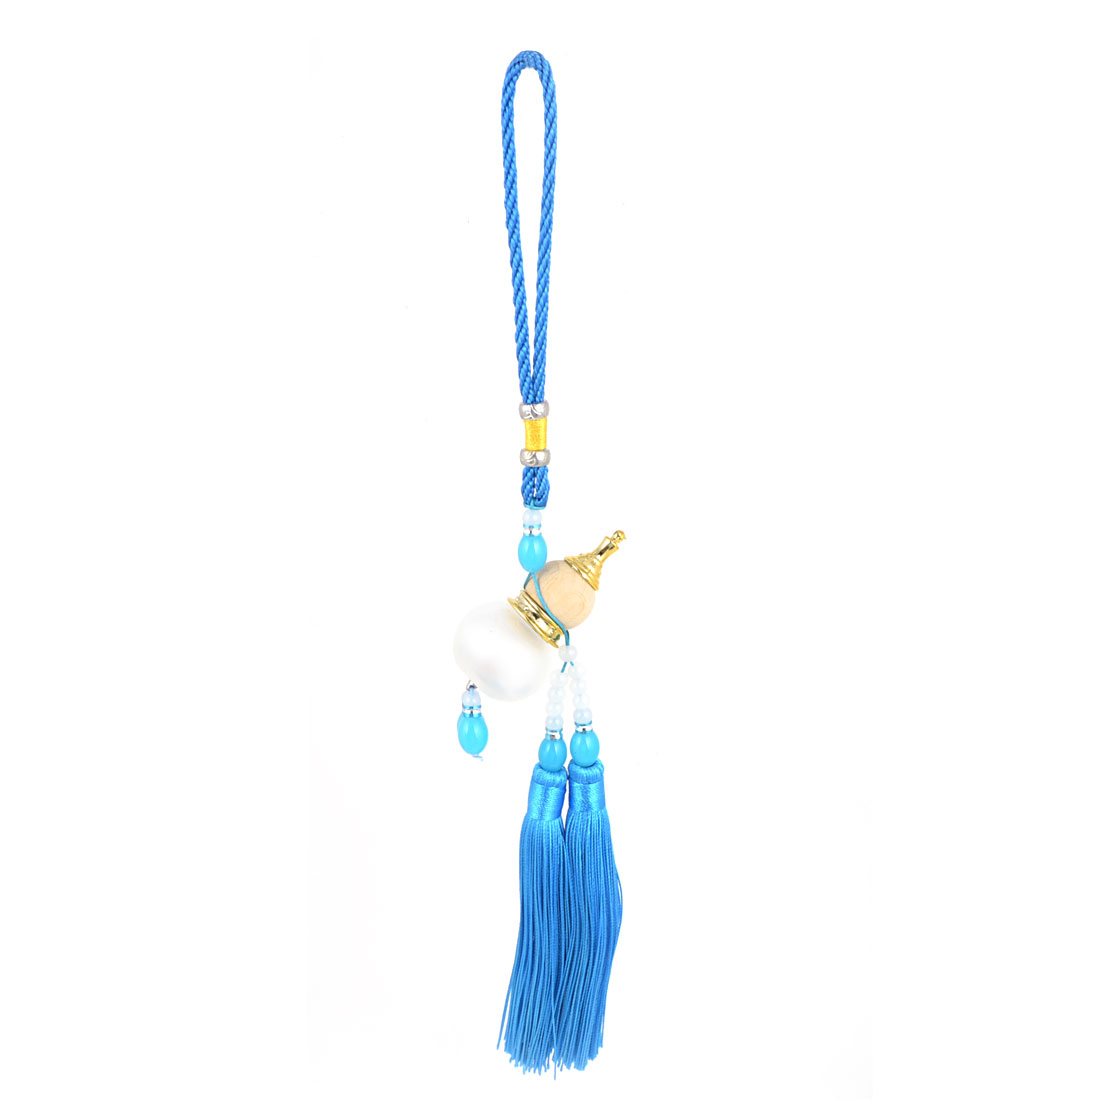 Pendant Tassels White Blue Beads Detail Cucurbit Perfume Bottle Wooden Calabash Car Hanging Decor